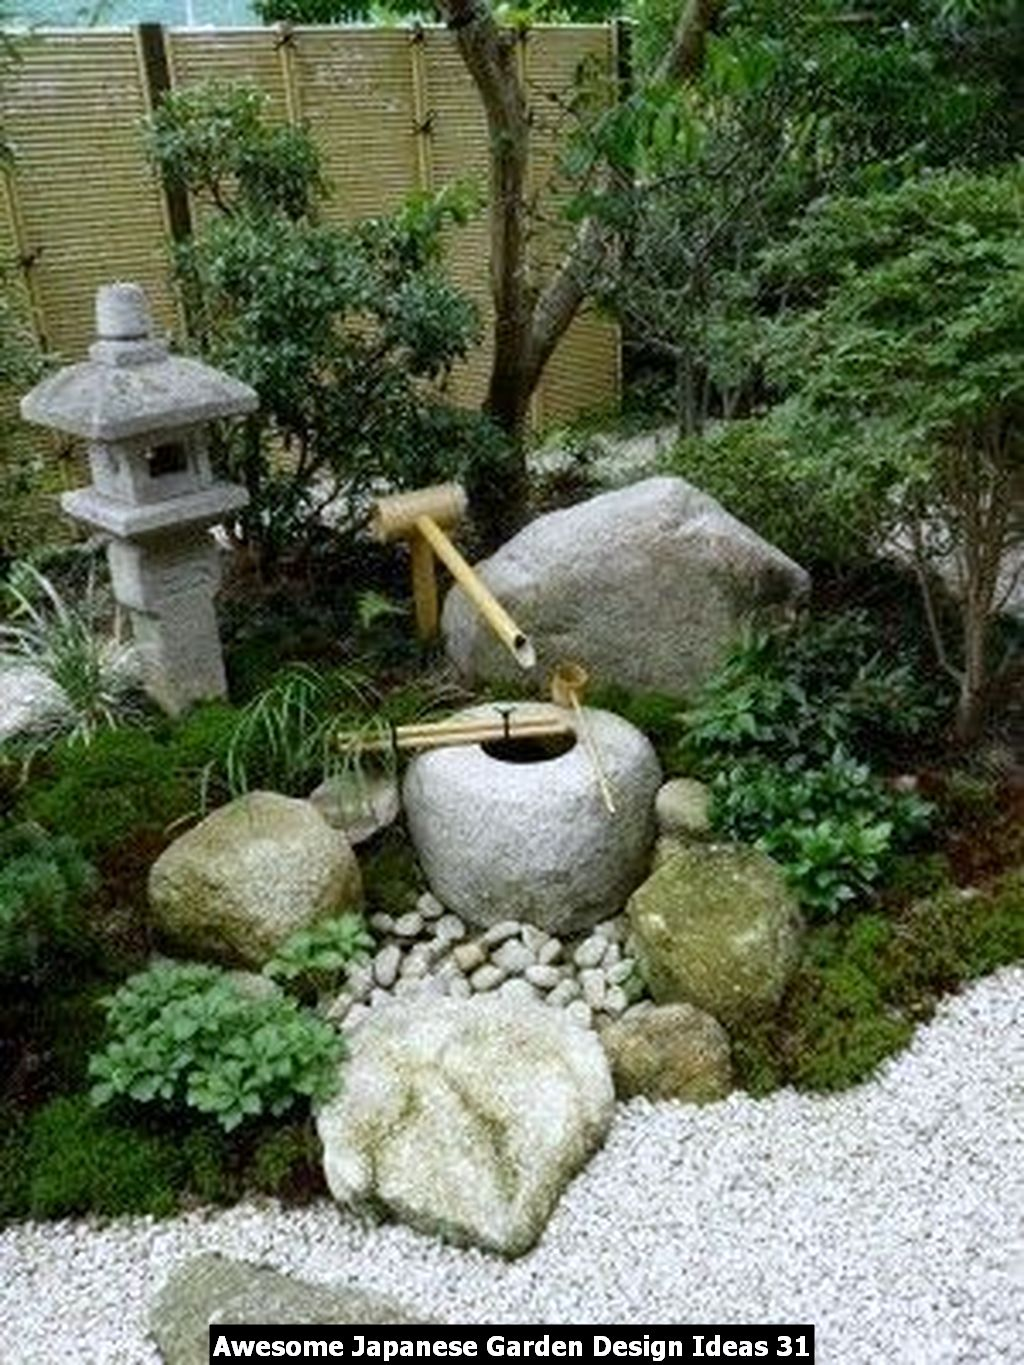 Awesome Japanese Garden Design Ideas 31